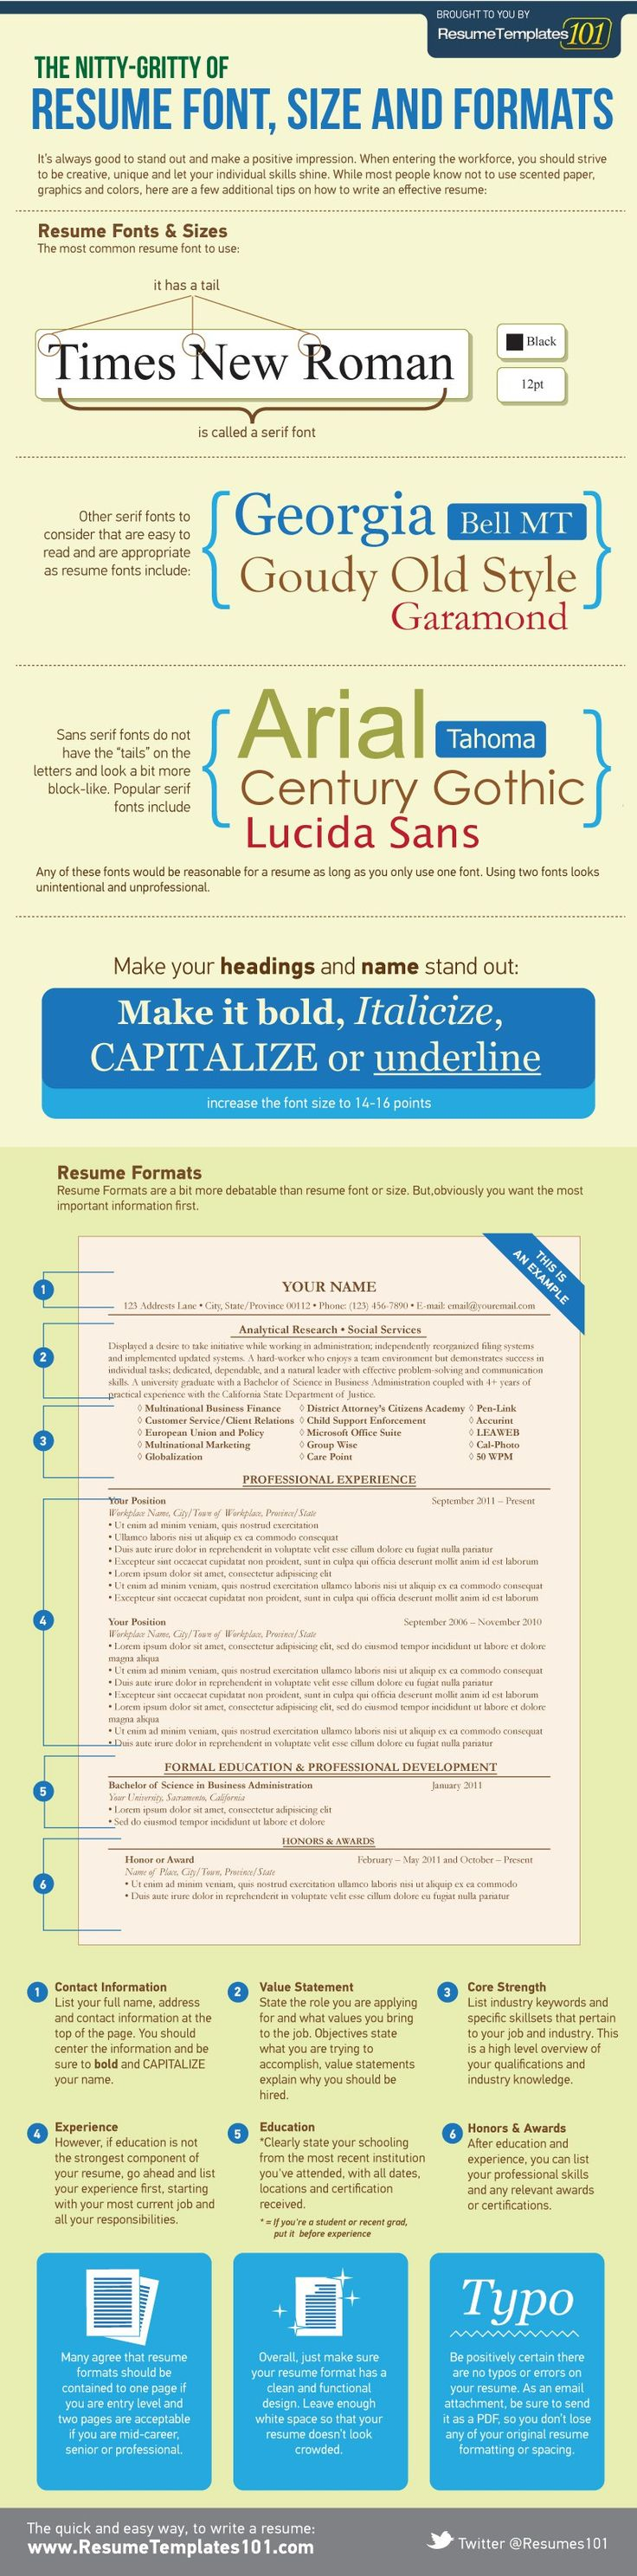 Resume_Fonts_Resume_Styles_Infographic